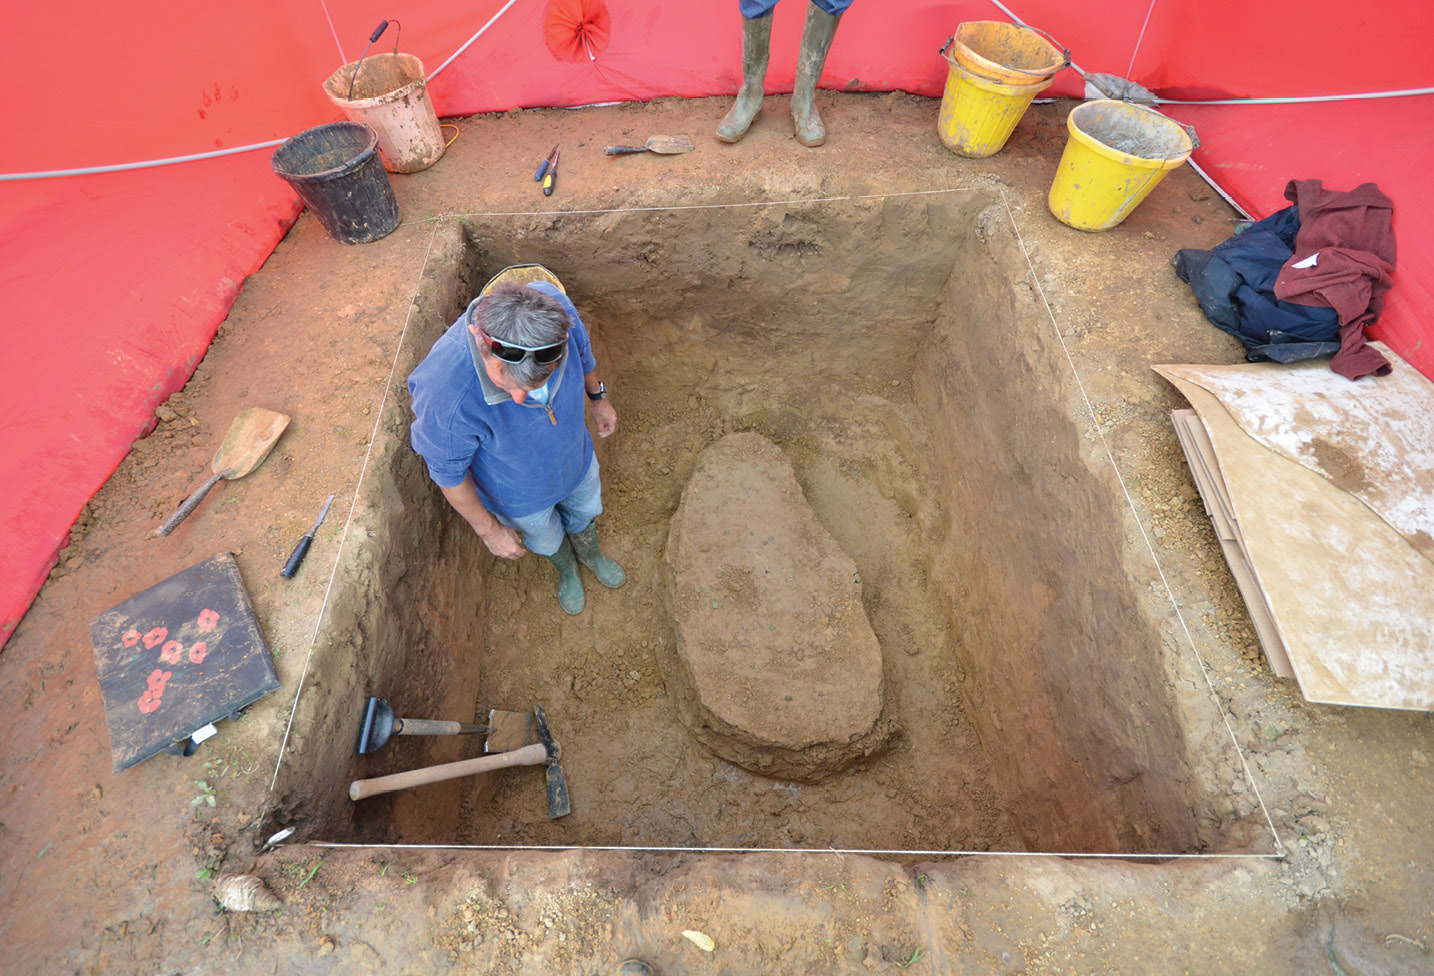 BELOW Archaeologists work to prepare the hoard for lifting. It was excavated as a single piece, weighing around a ton.